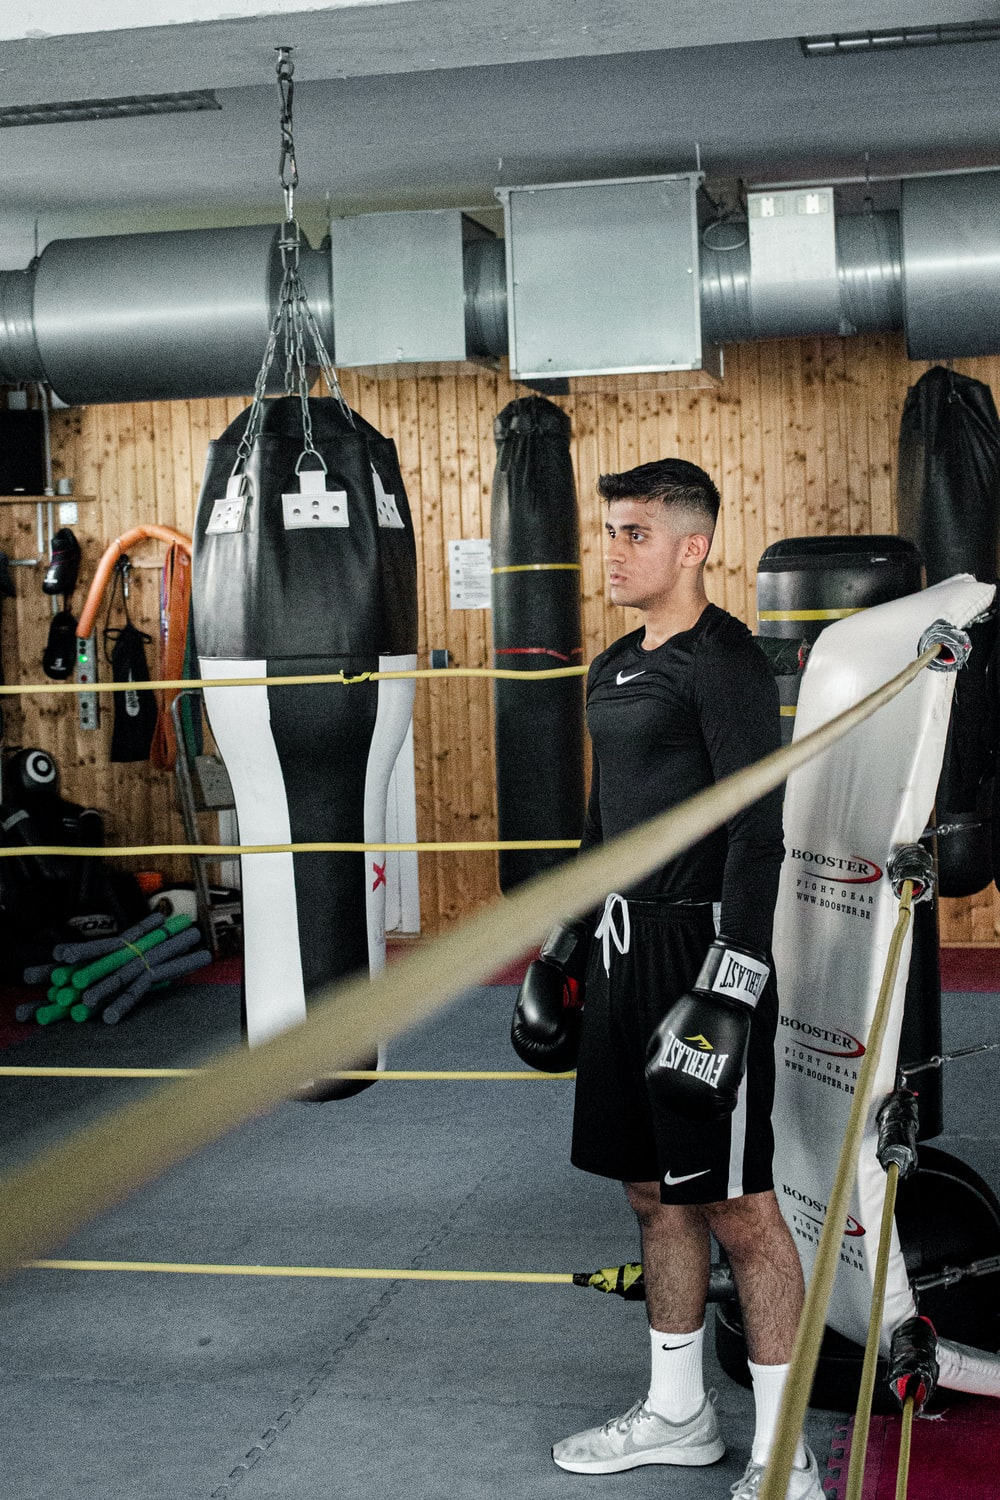 man standing at the corner of boxing ring